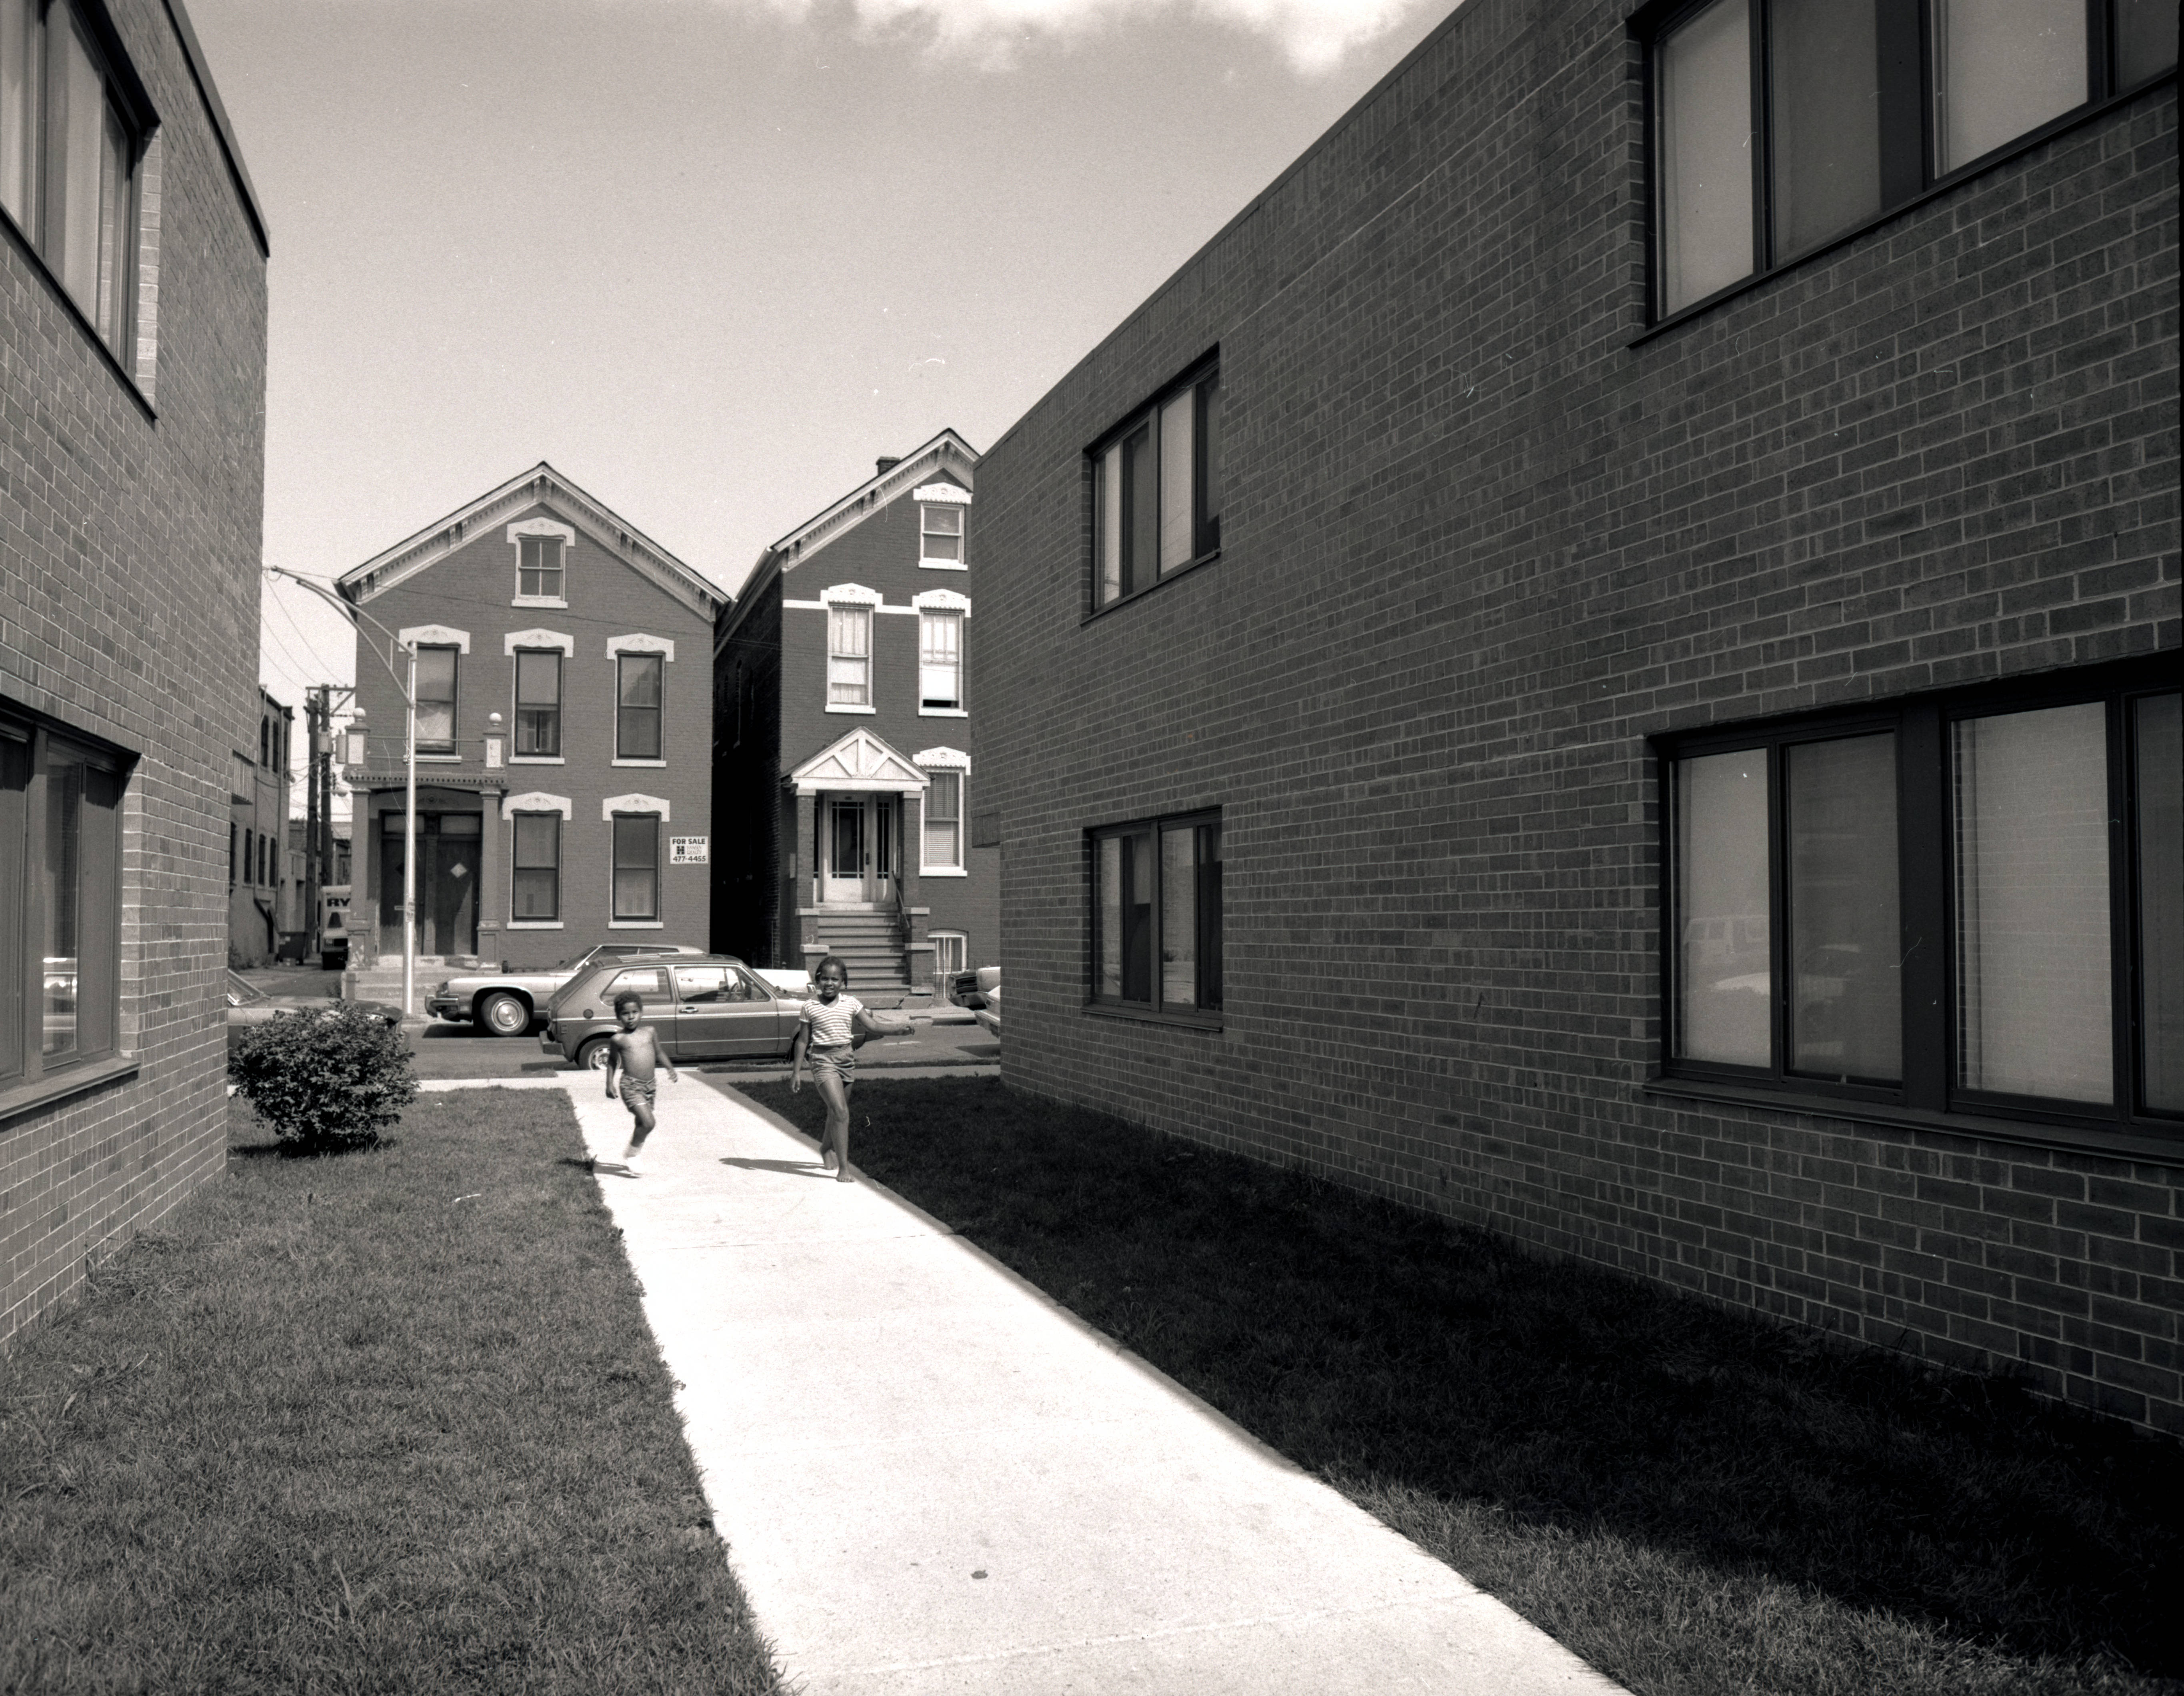 Two children are walking down the sidewalk between two new buildings.